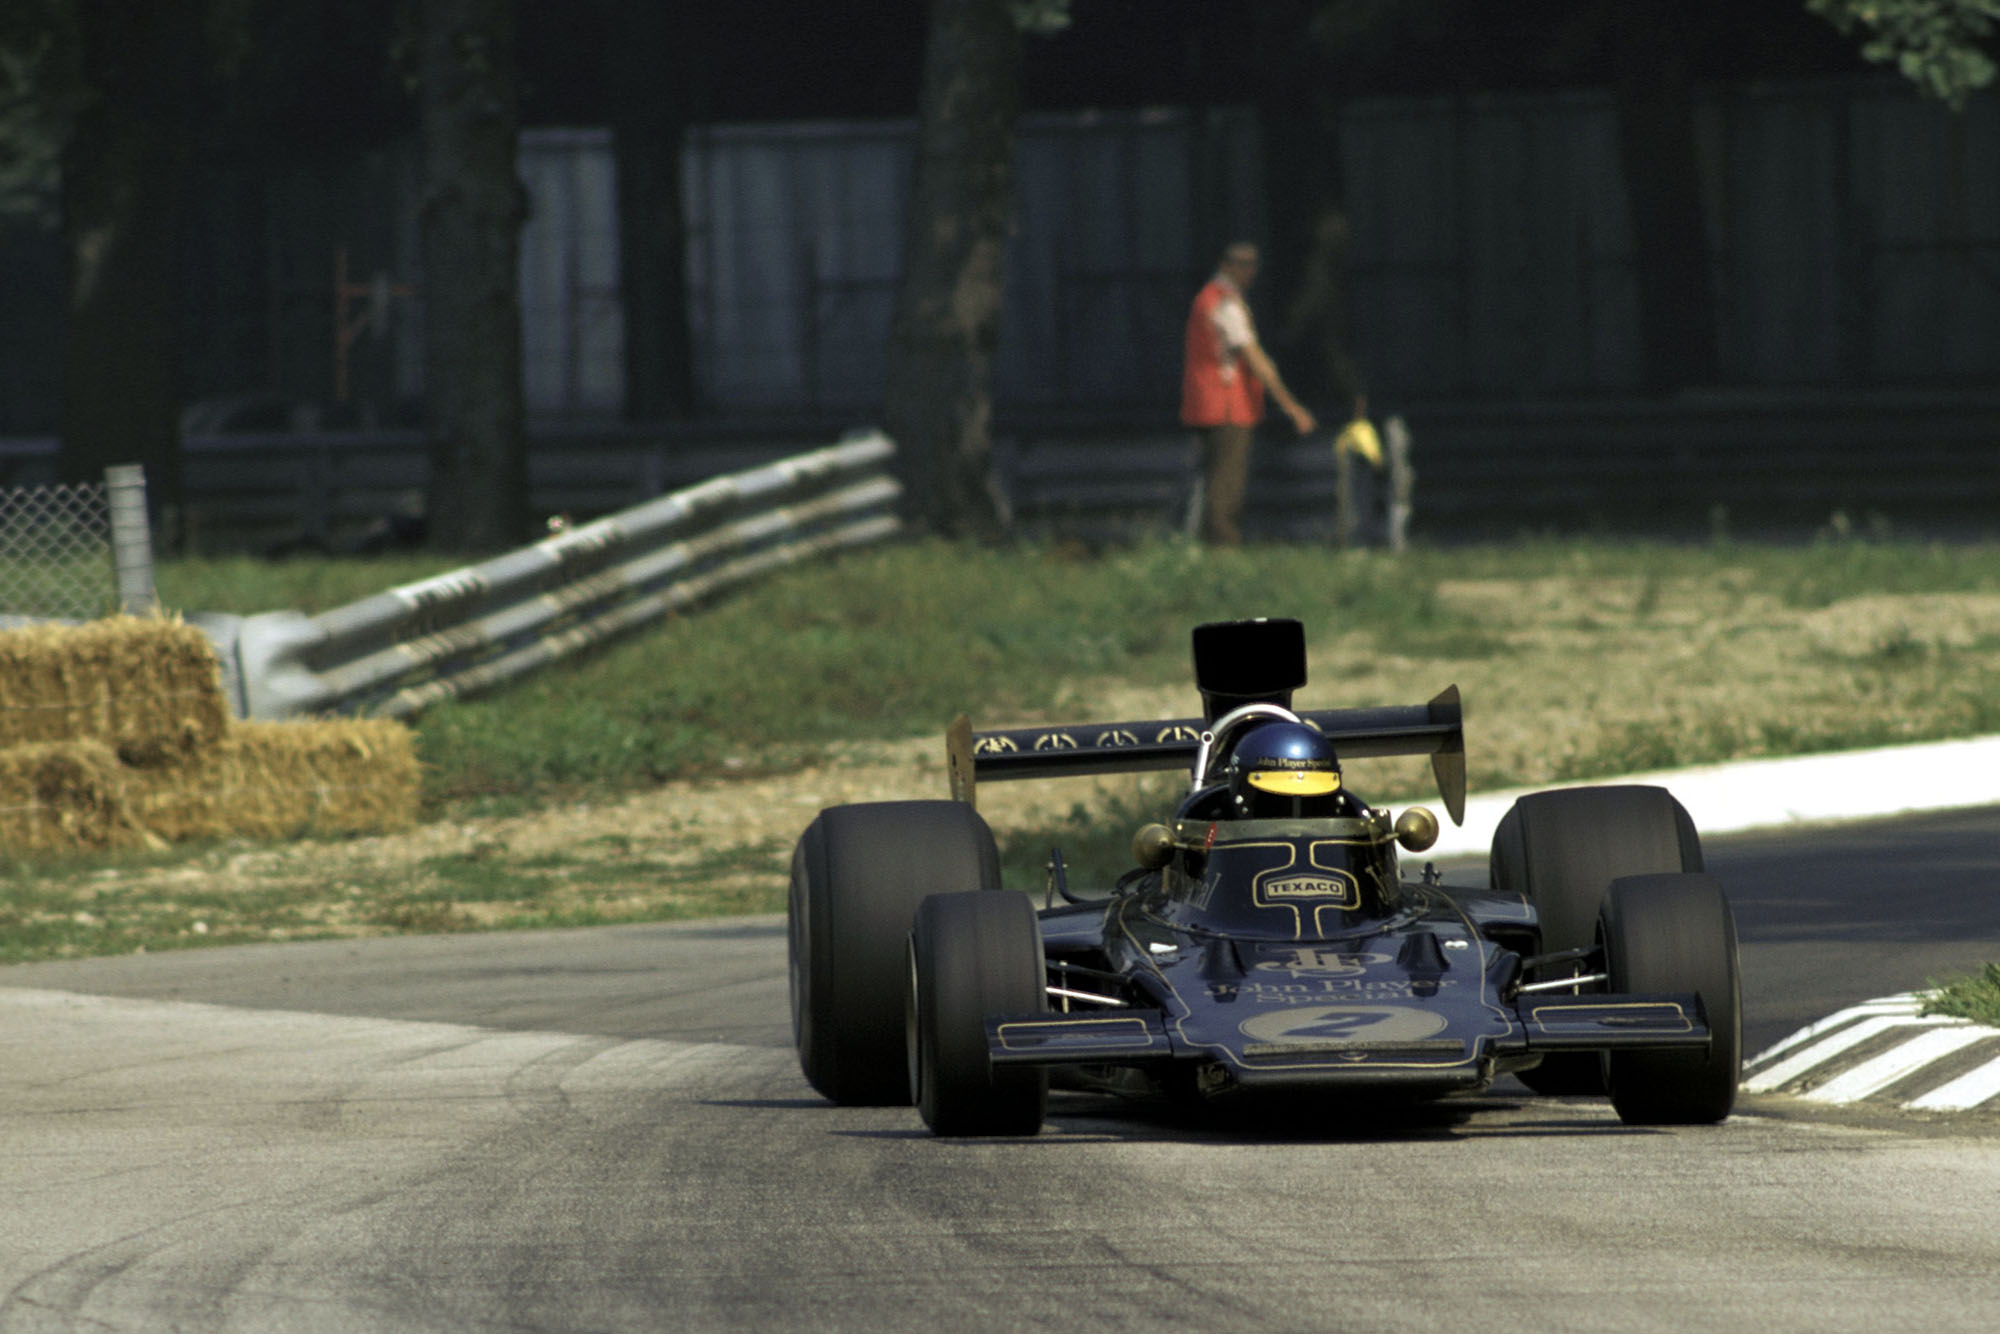 Ronnie Peterson slides through the chicane in Lotus at the 1973 Italian Grand Prix, Monza.